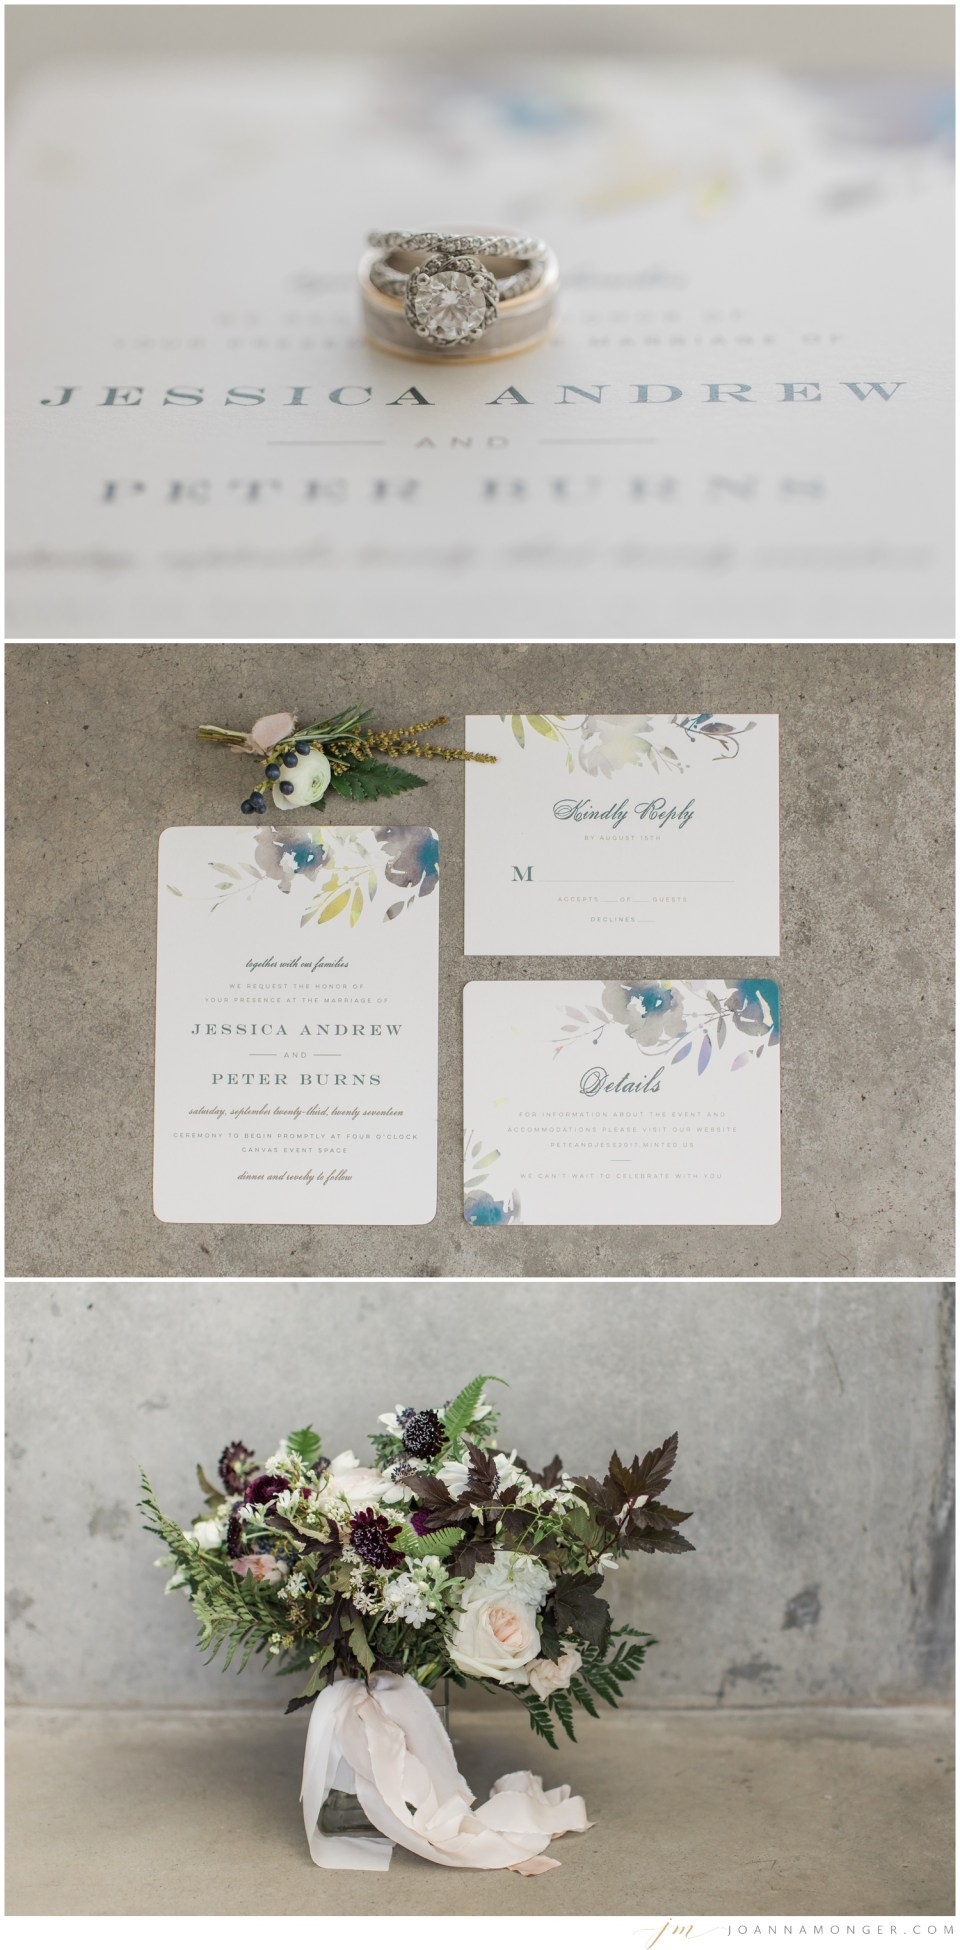 Details from an elegant wedding at Canvas Event Space in SODO, Seattle, WA. | Joanna Monger Photography | Snohomish & Seattle Wedding Photographer